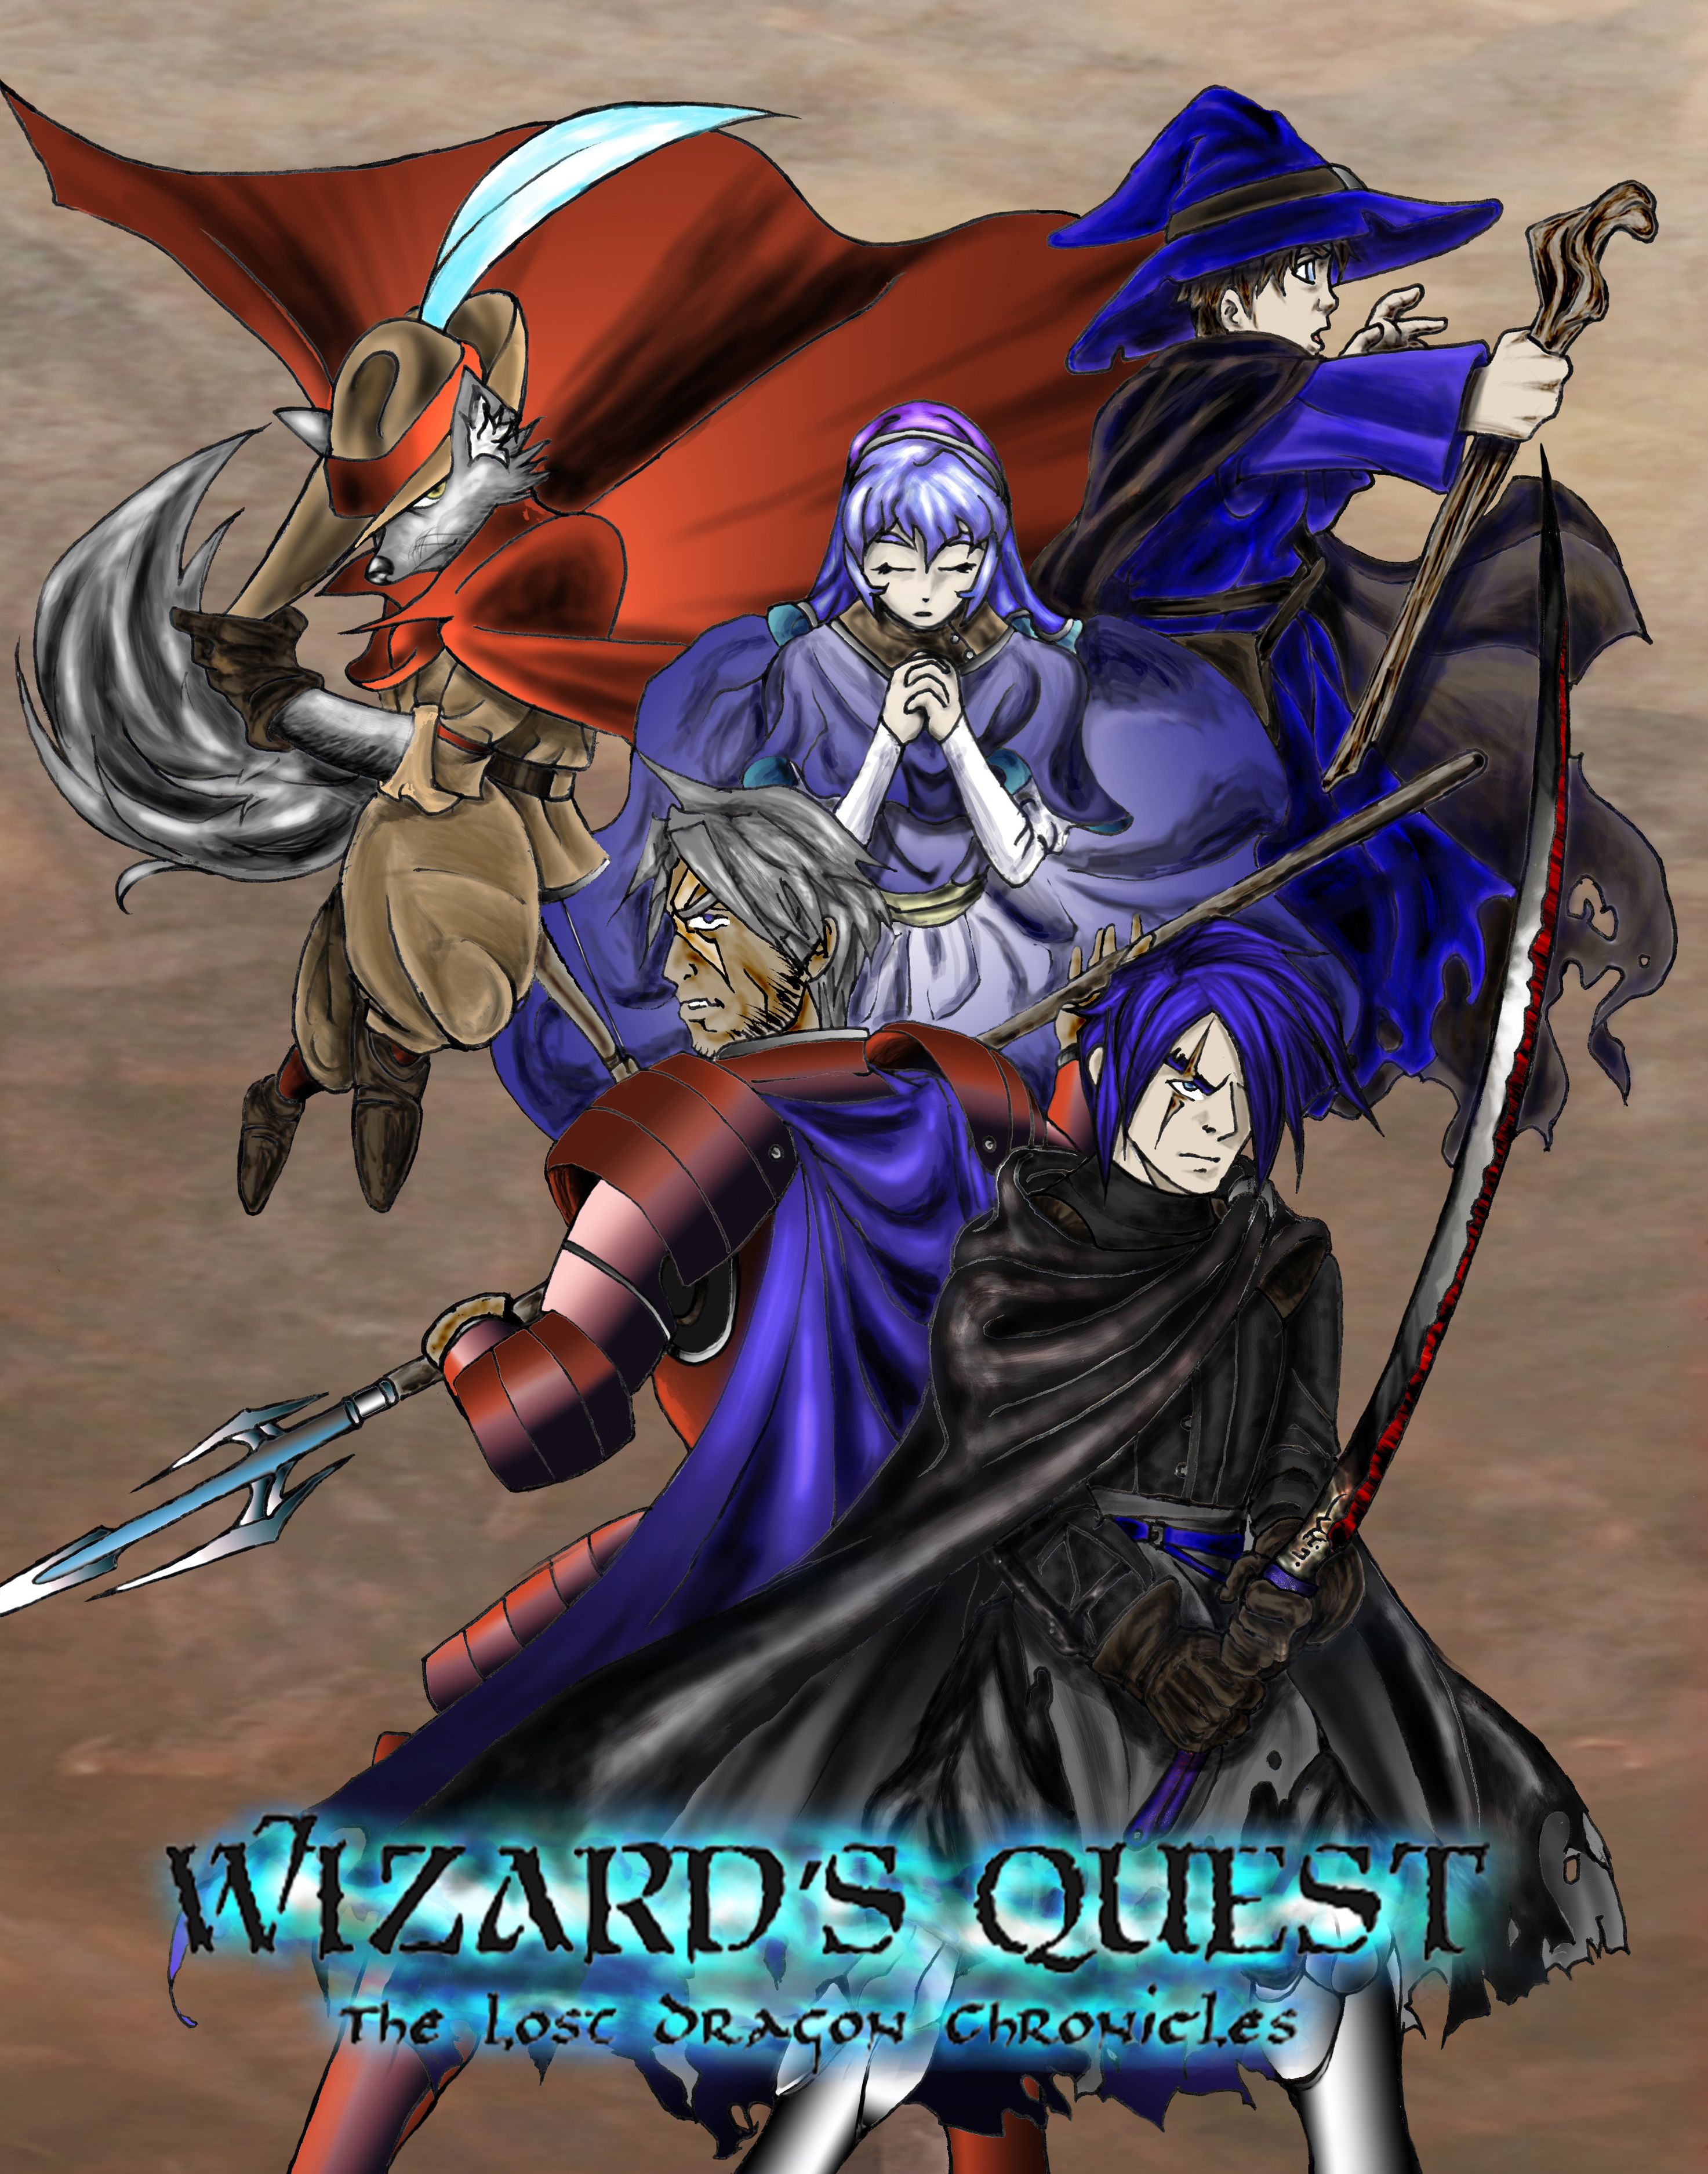 Wizard's Quest cover